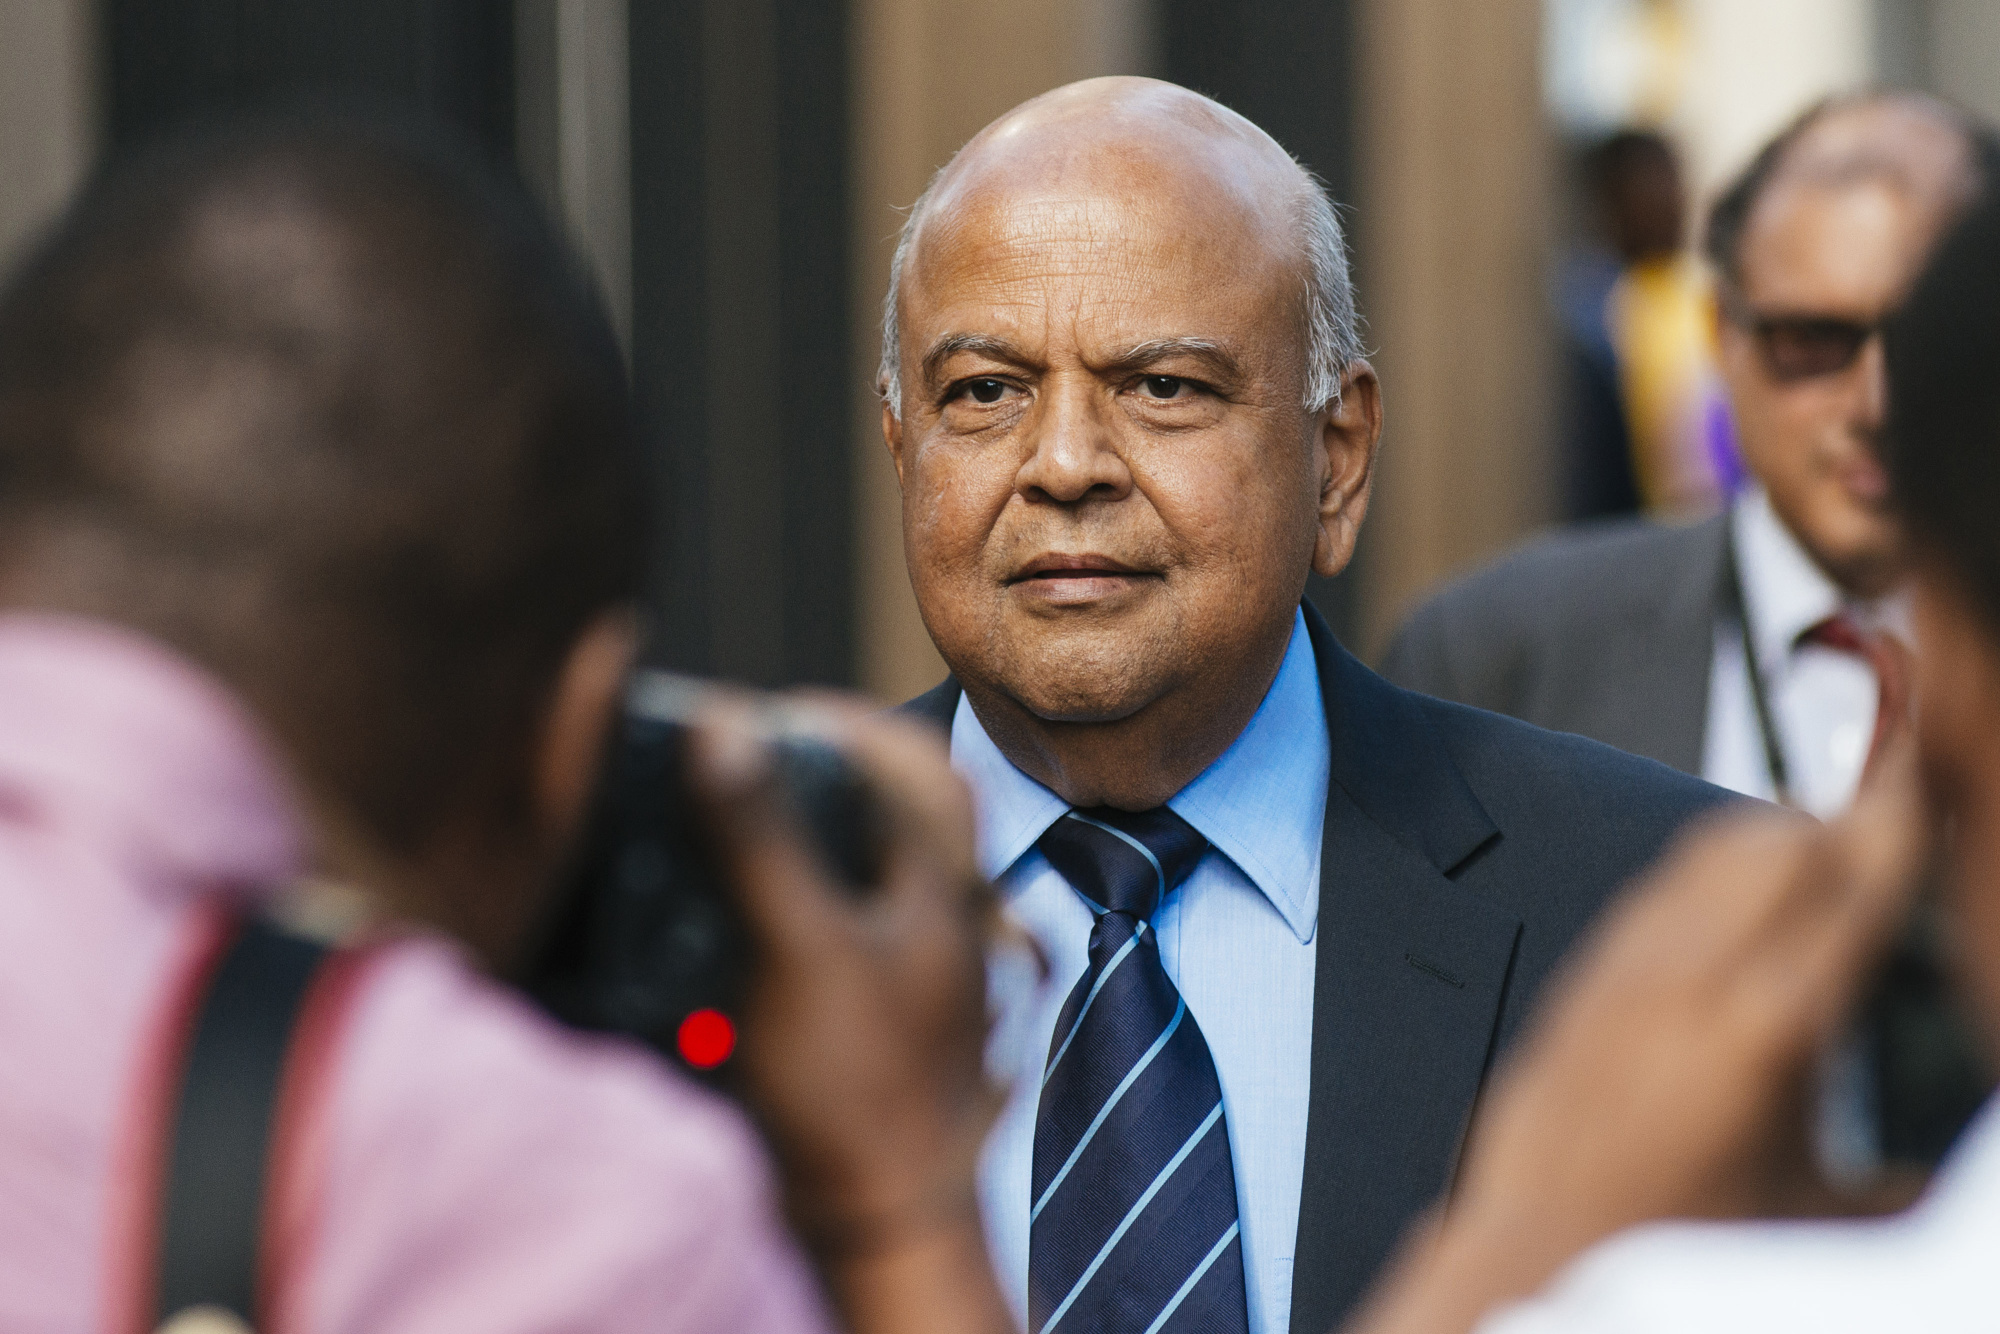 Pravin Gordhan in Pretoria, March 28. Photographer: Waldo Swiegers/Bloomberg